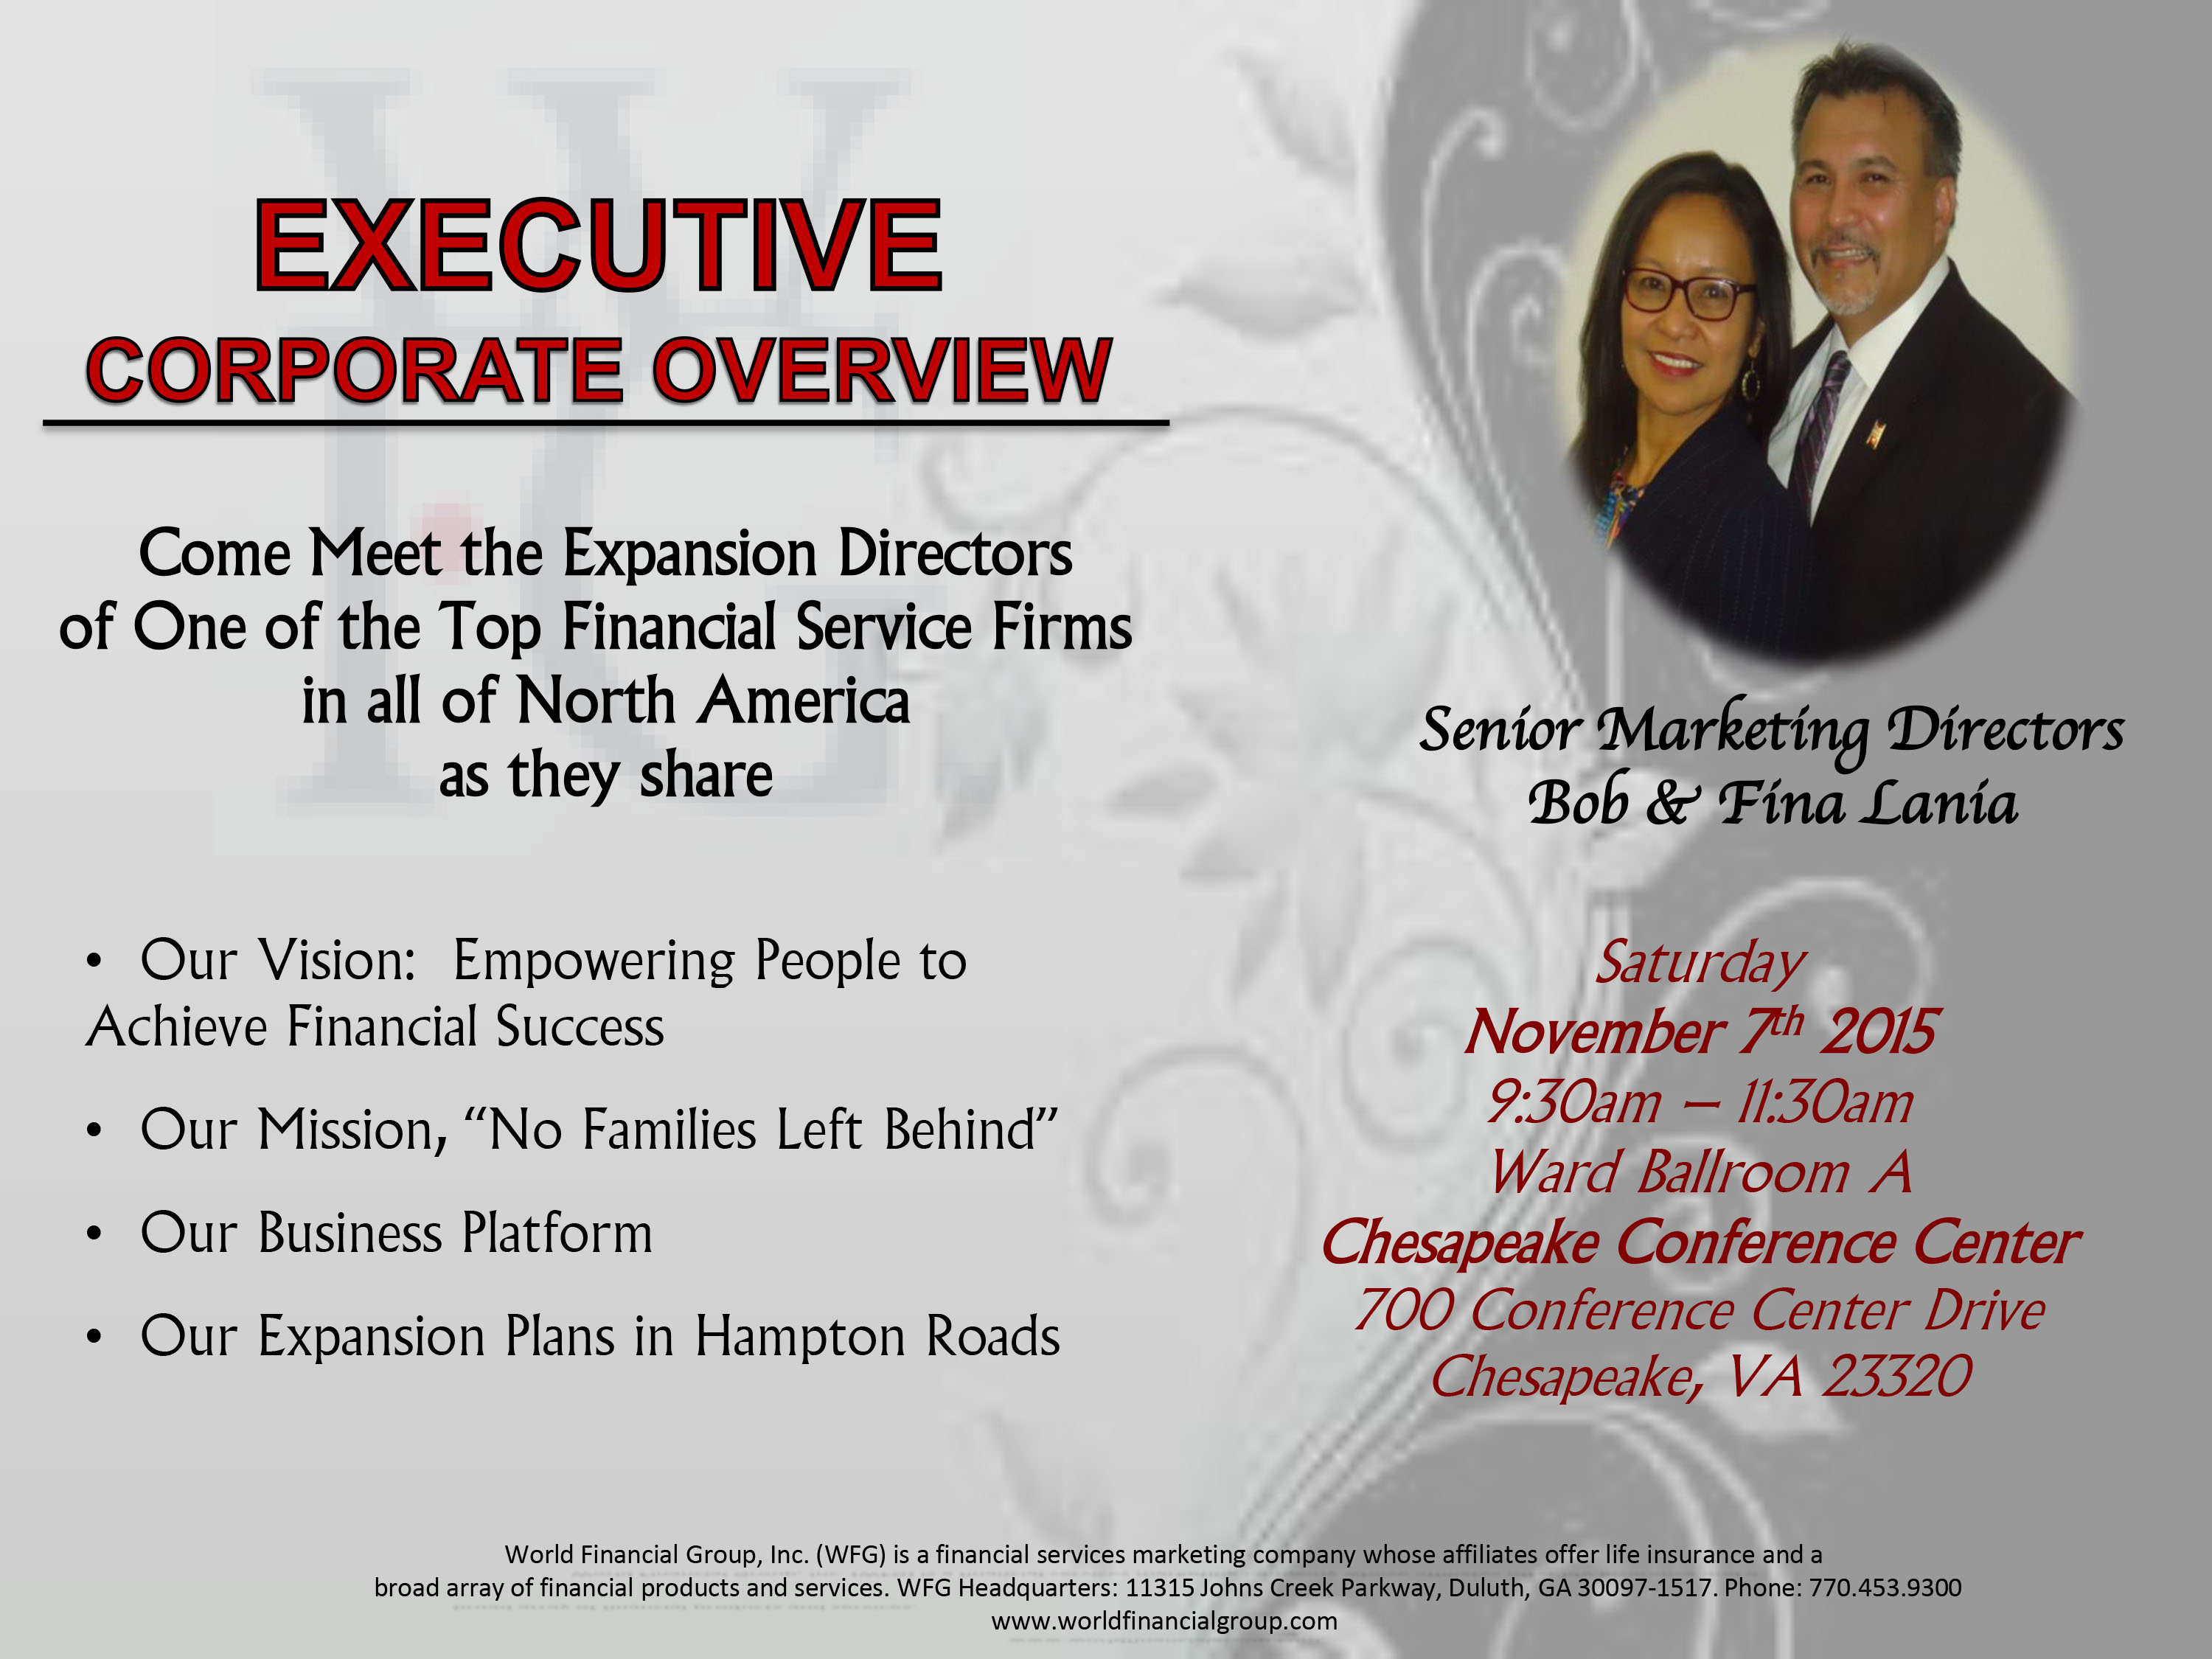 Executive Corporate Overview